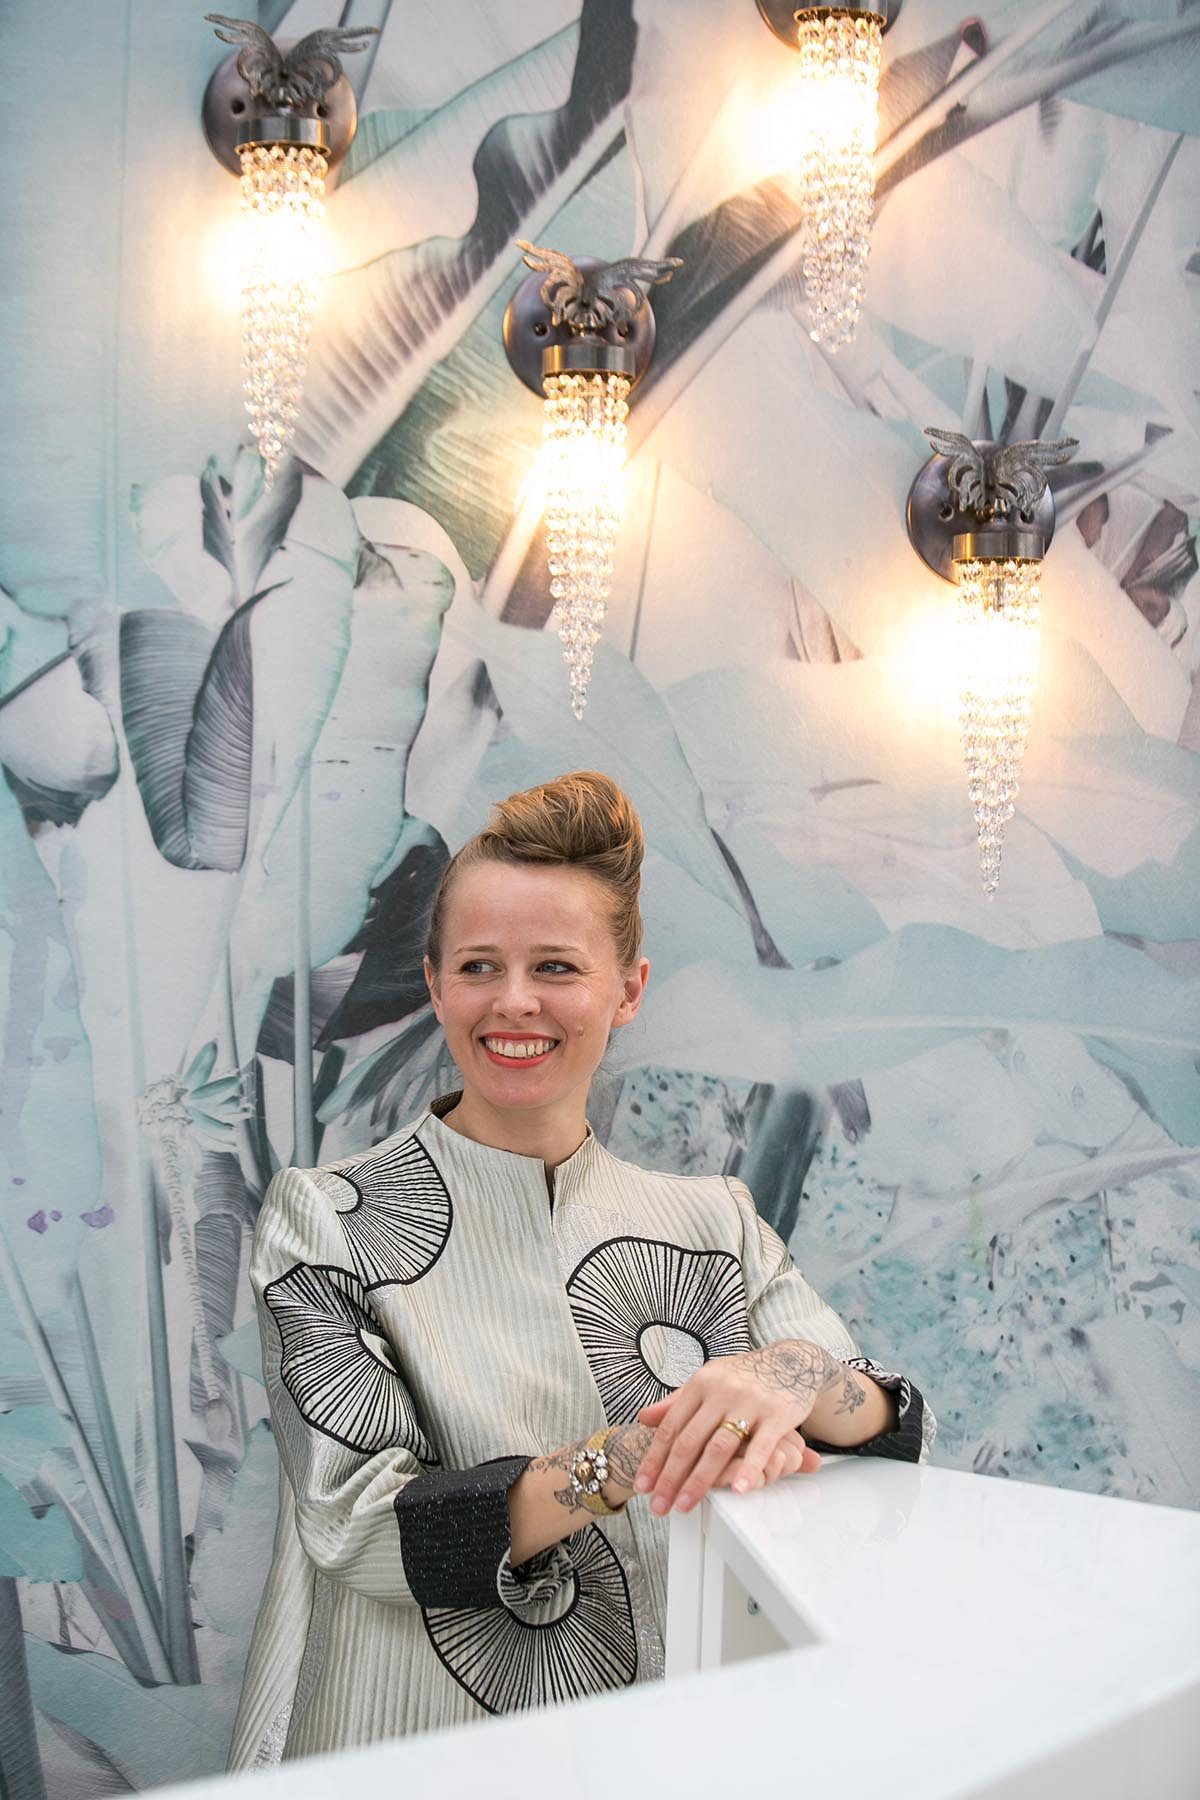 Fiona Gall from Emerald Faerie lighting brand at the VIP & Press room reception desk. Featuring her Birds of Paradise wall lights and Elli Popp's wallpaper